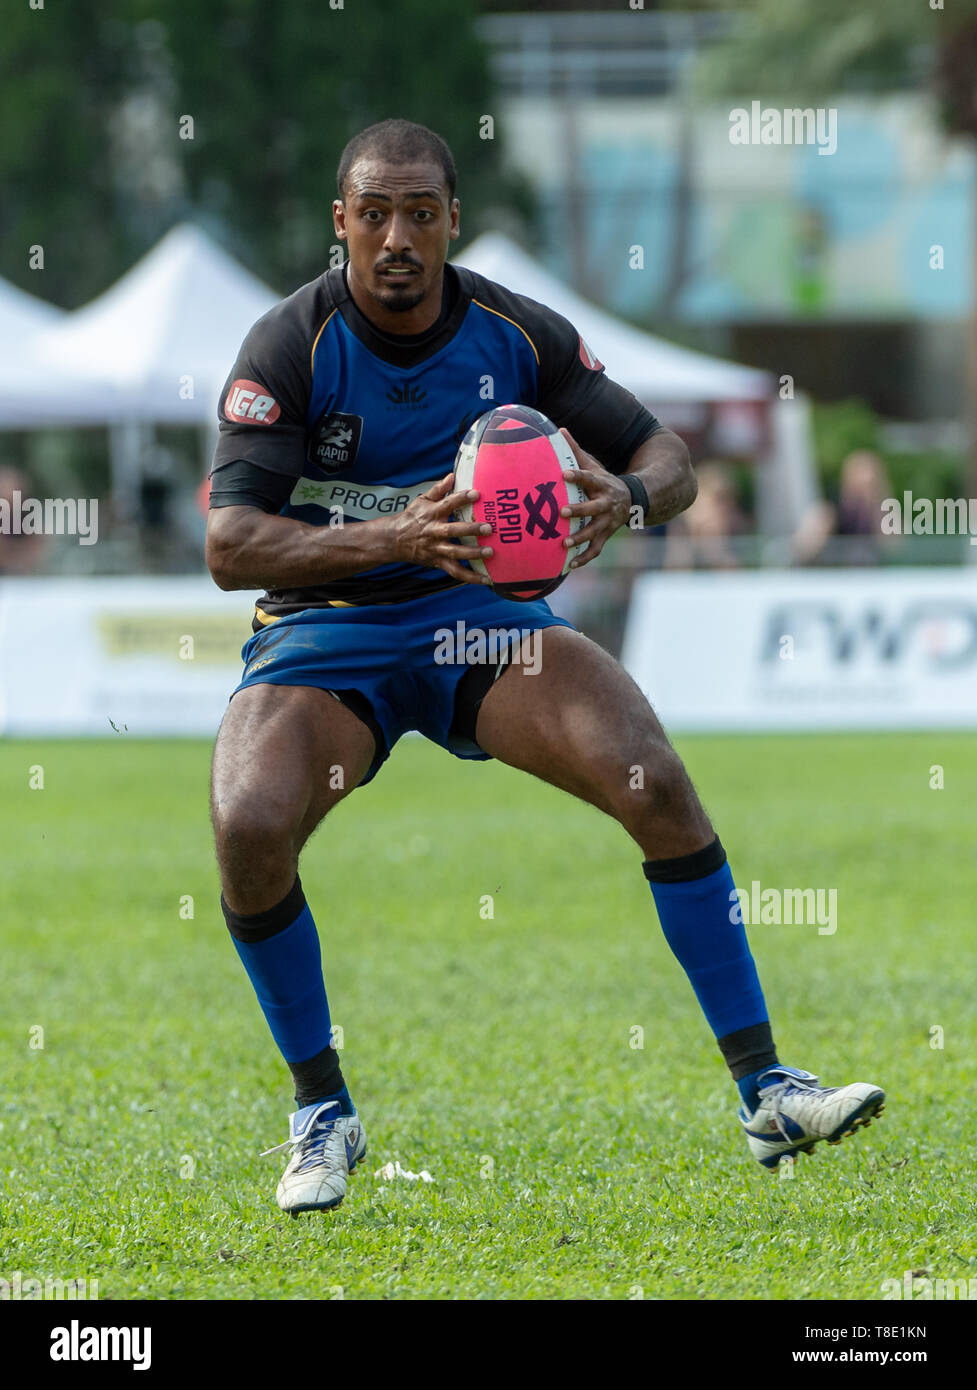 Hong Kong, China. 12th May, 2019. Marcel BRACHE (Captain) runs with the ball.Western Force vs South China Tigers Global Rapid Rugby. The Western Force make their inaugural appearance in Hong Kong facing off against the FWD South China Tigers in the finale of the Global Rapid Rugby Asian Showcase Series Credit: Jayne Russell/ZUMA Wire/Alamy Live News Stock Photo